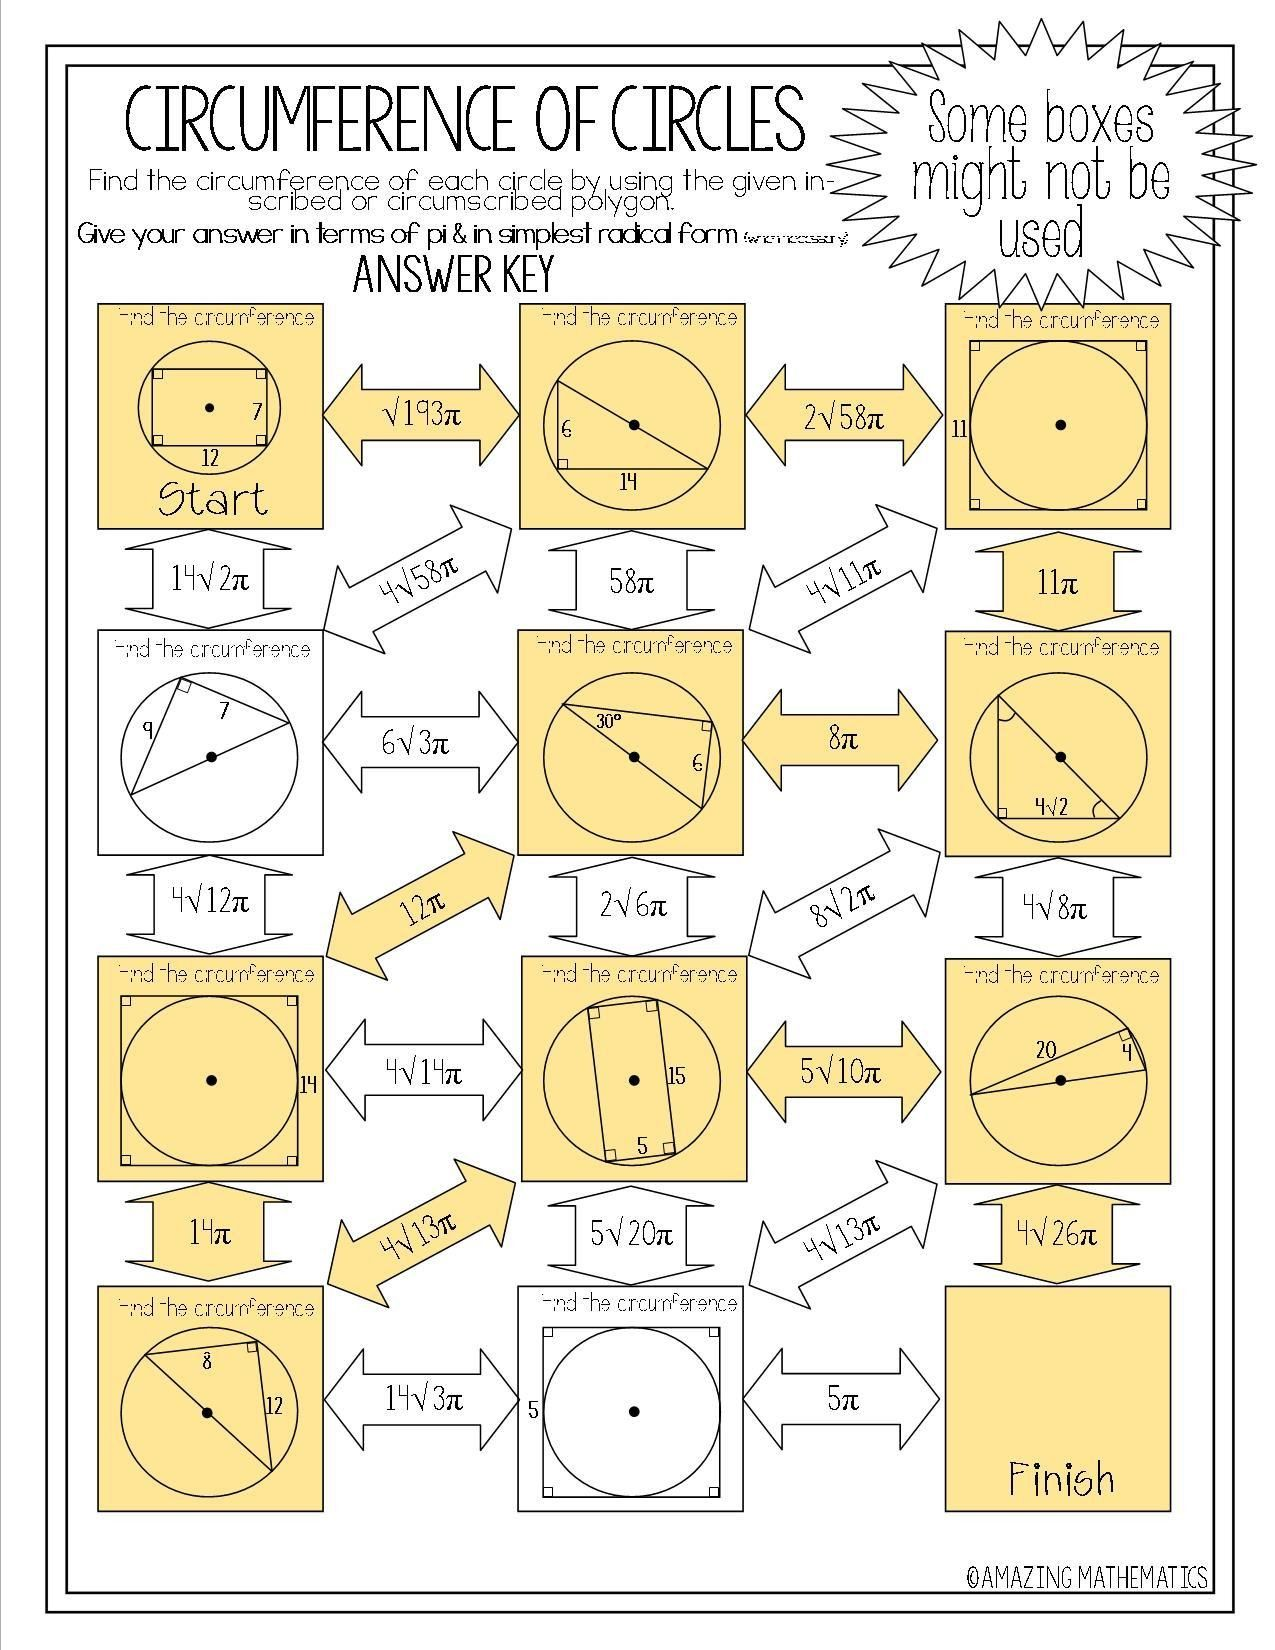 Angles In A Circle Worksheet Circumference Of Circles Maze